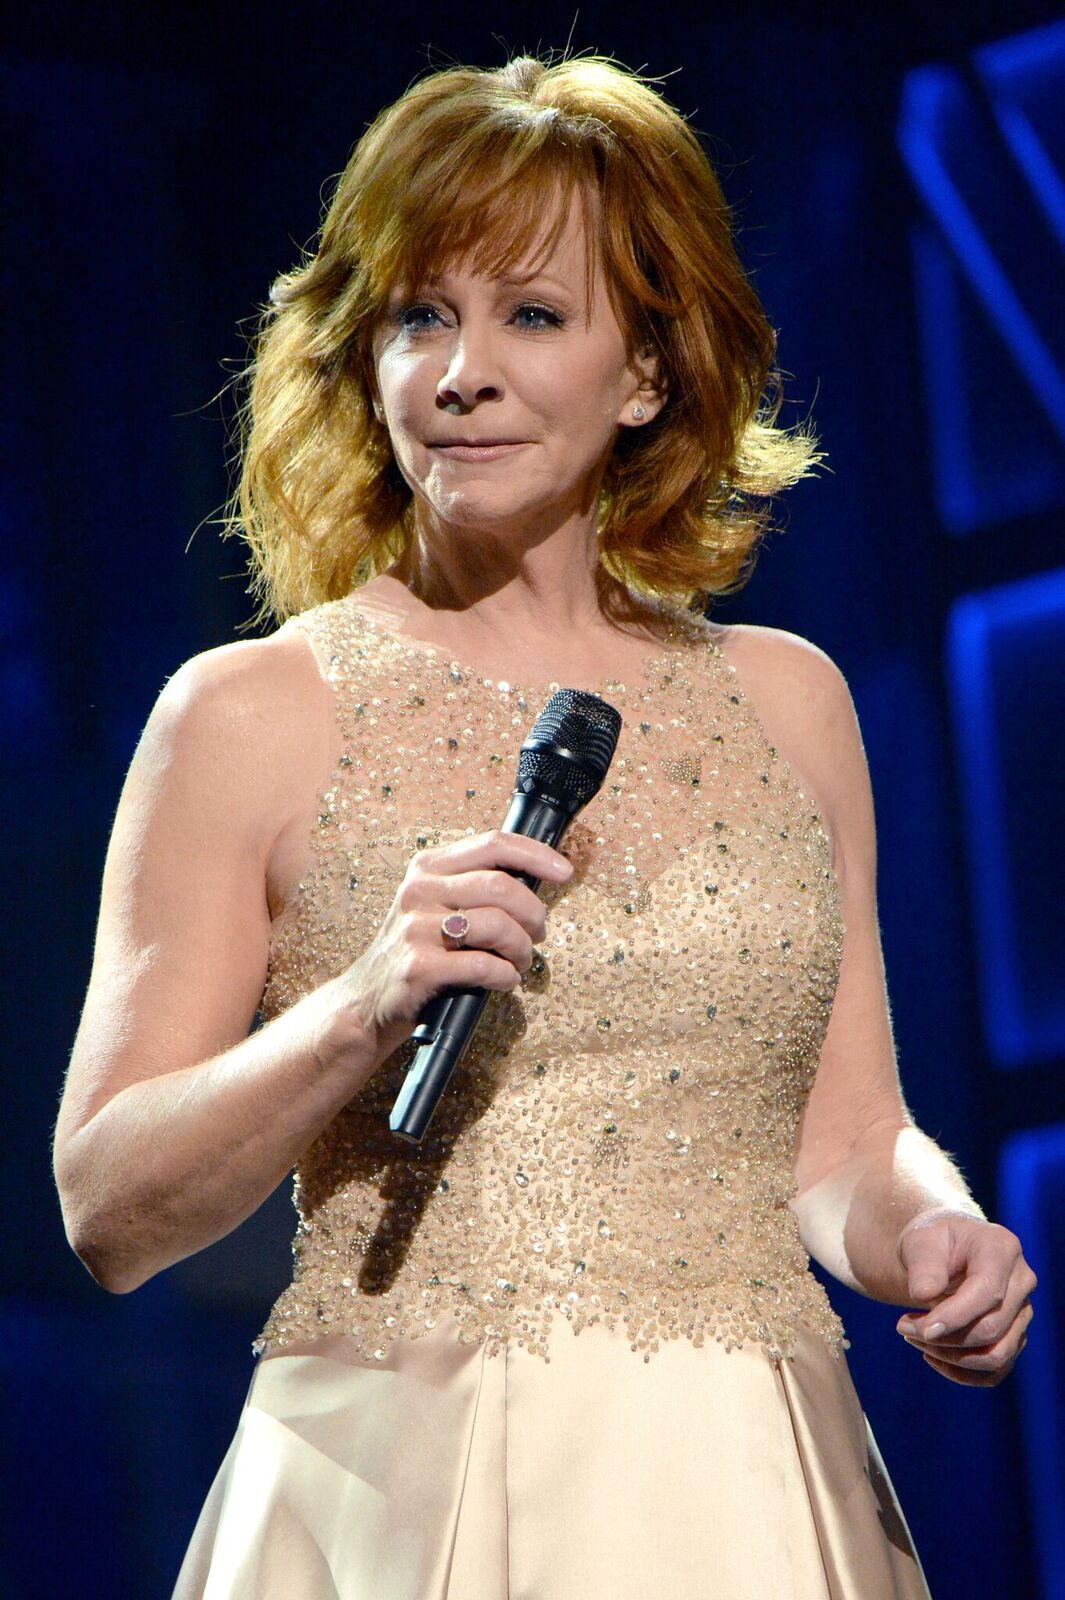 Recording artist Reba McEntire performs onstage during the 52nd Academy of Country Music Awards at T-Mobile Arena on April 2, 2017 in Las Vegas, Nevada | Photo: Getty Images